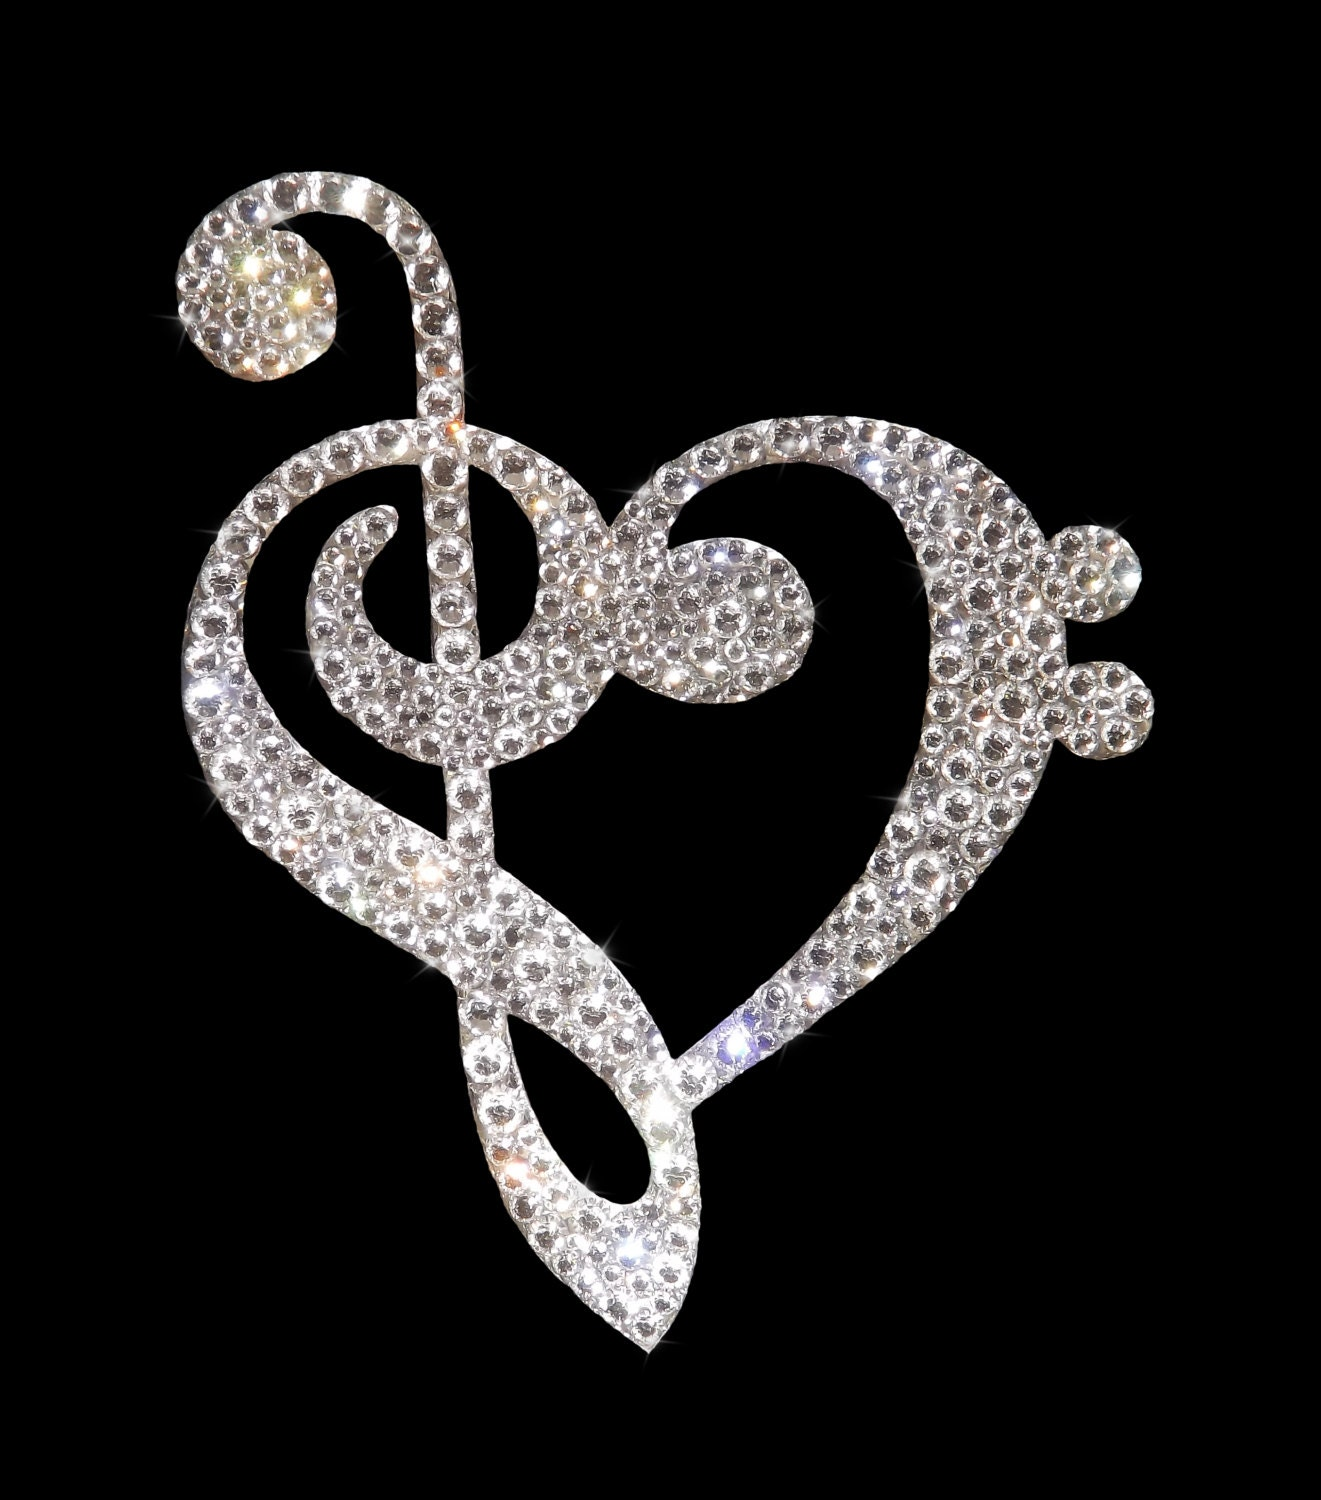 Swarovski Crystal Music Note Heart Cake Topper by